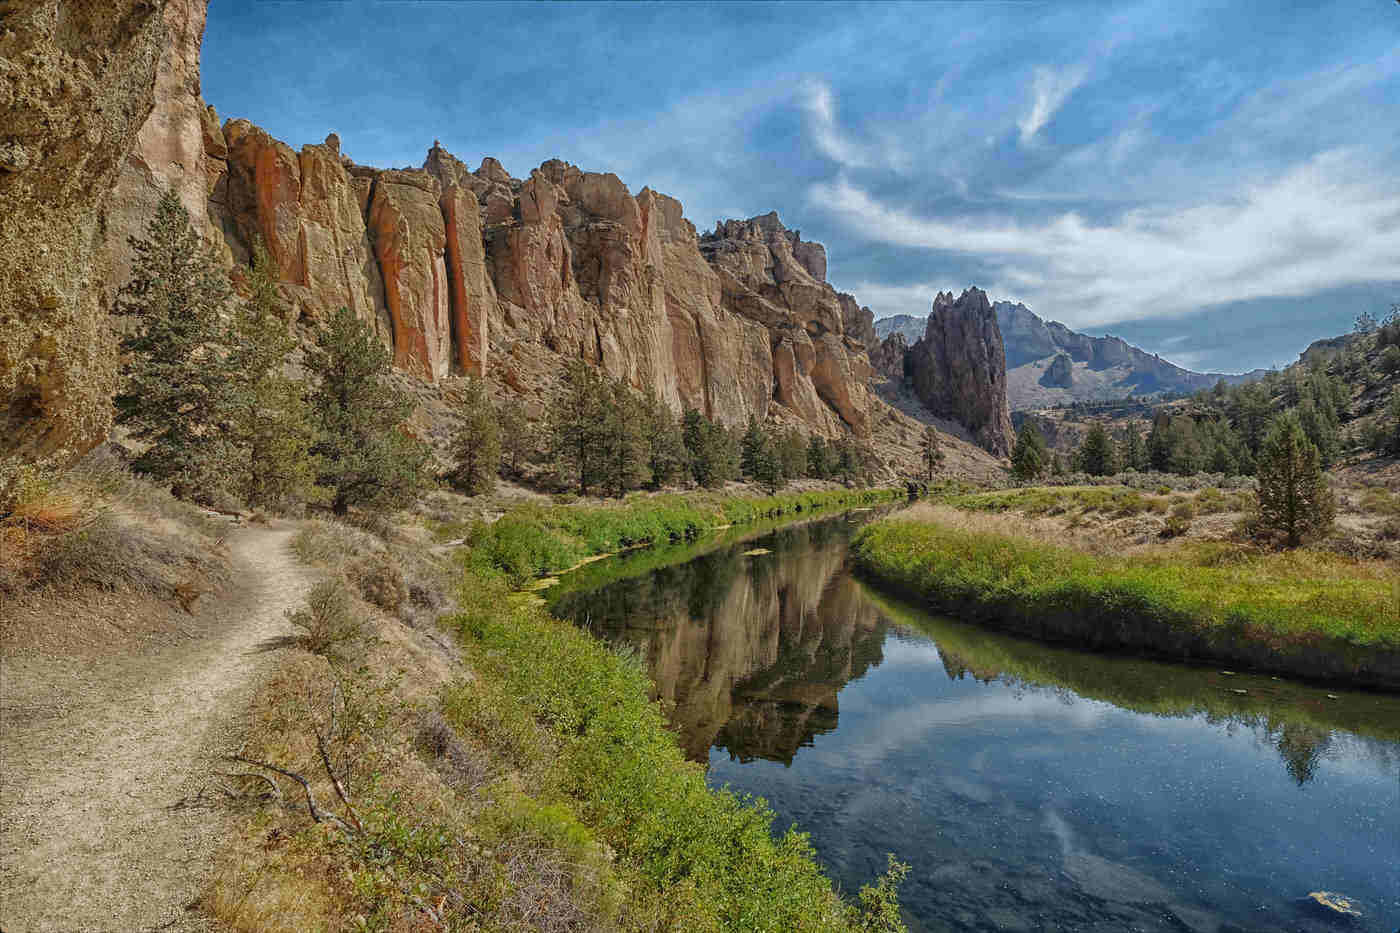 smith rock state park - 11 best state parks in the united states